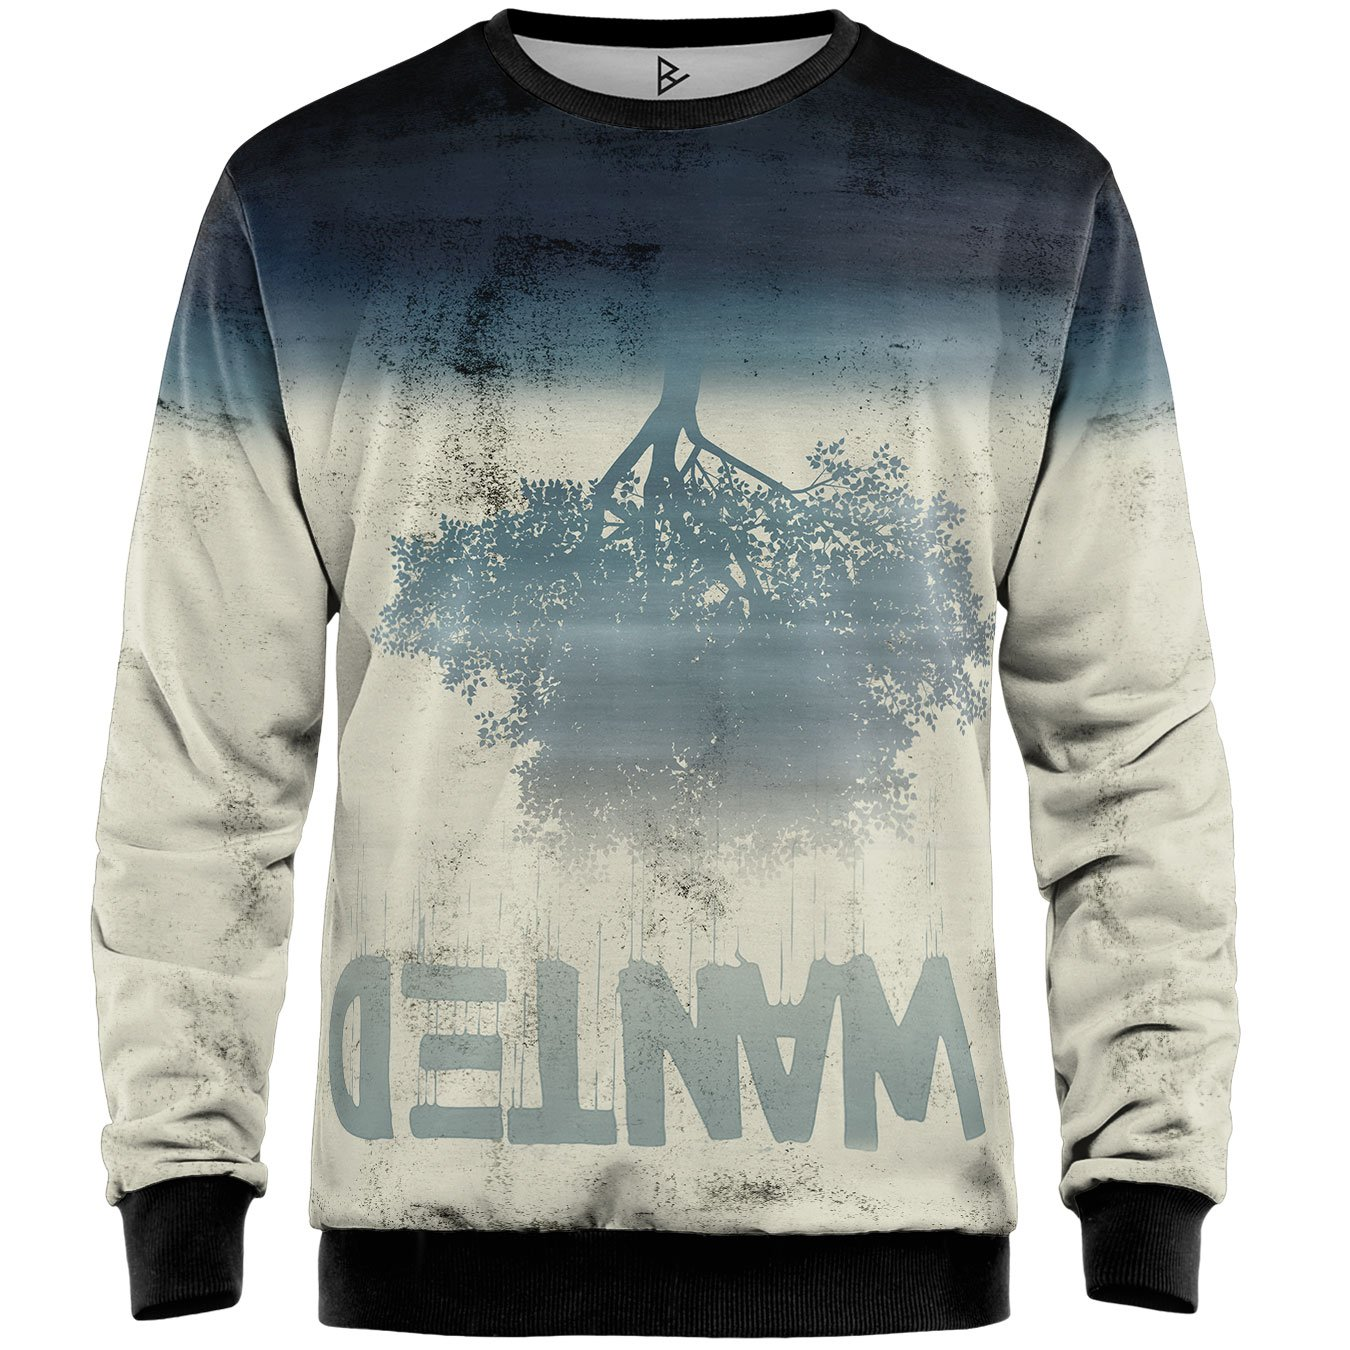 Blowhammer - Sweatshirt Herren - Upside Down SWT